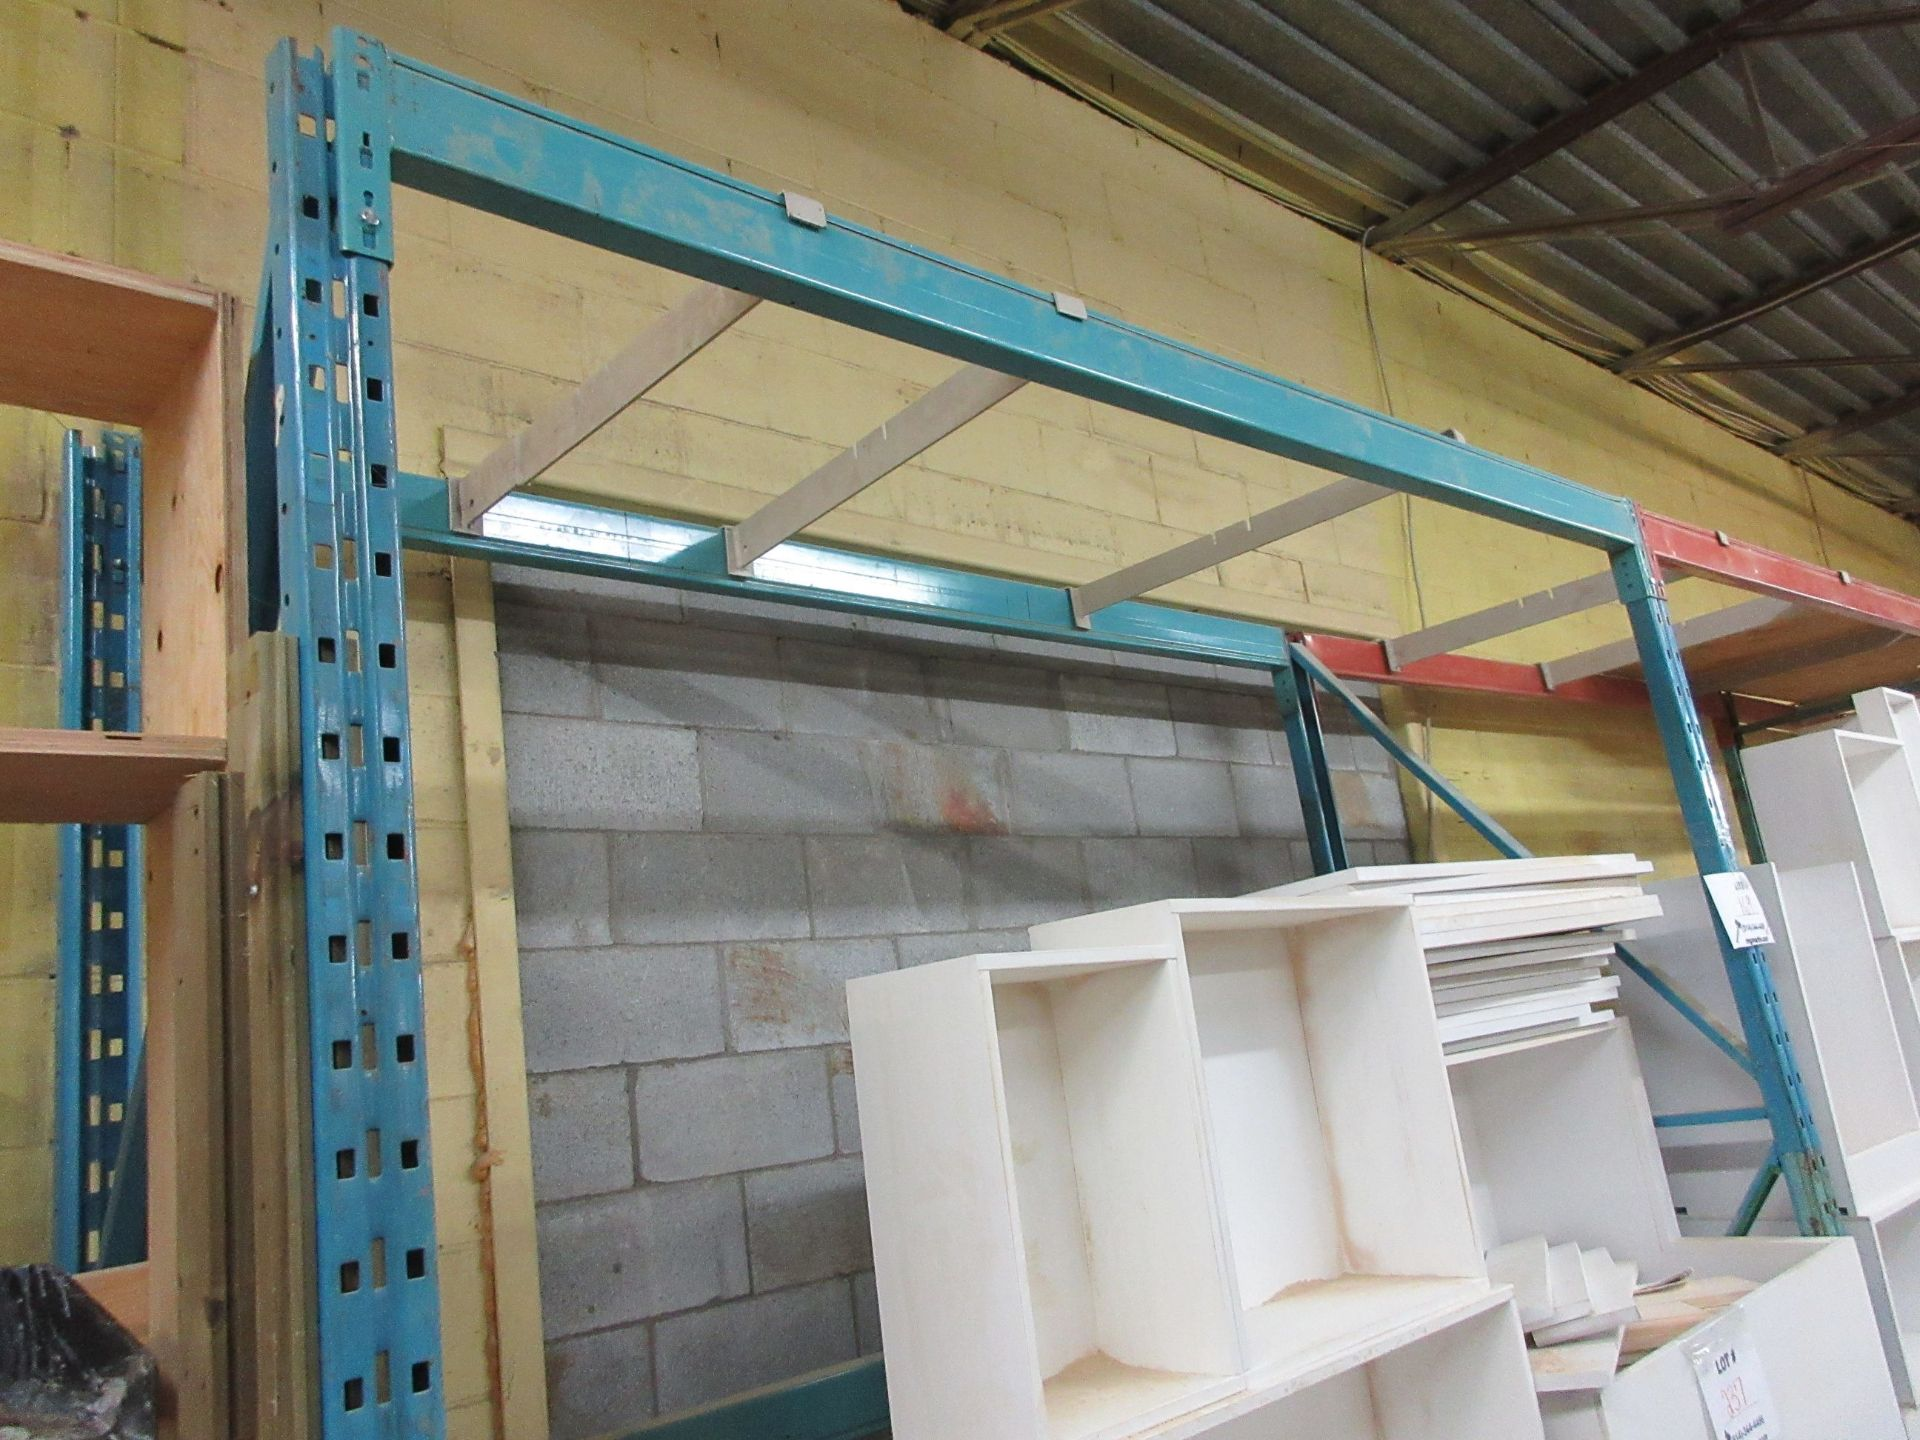 "Lot 169 - Sections of industrial racking 9ft W x 36"" D x 9ft H (6) (SUBJECT TO BANK APPROVAL)"